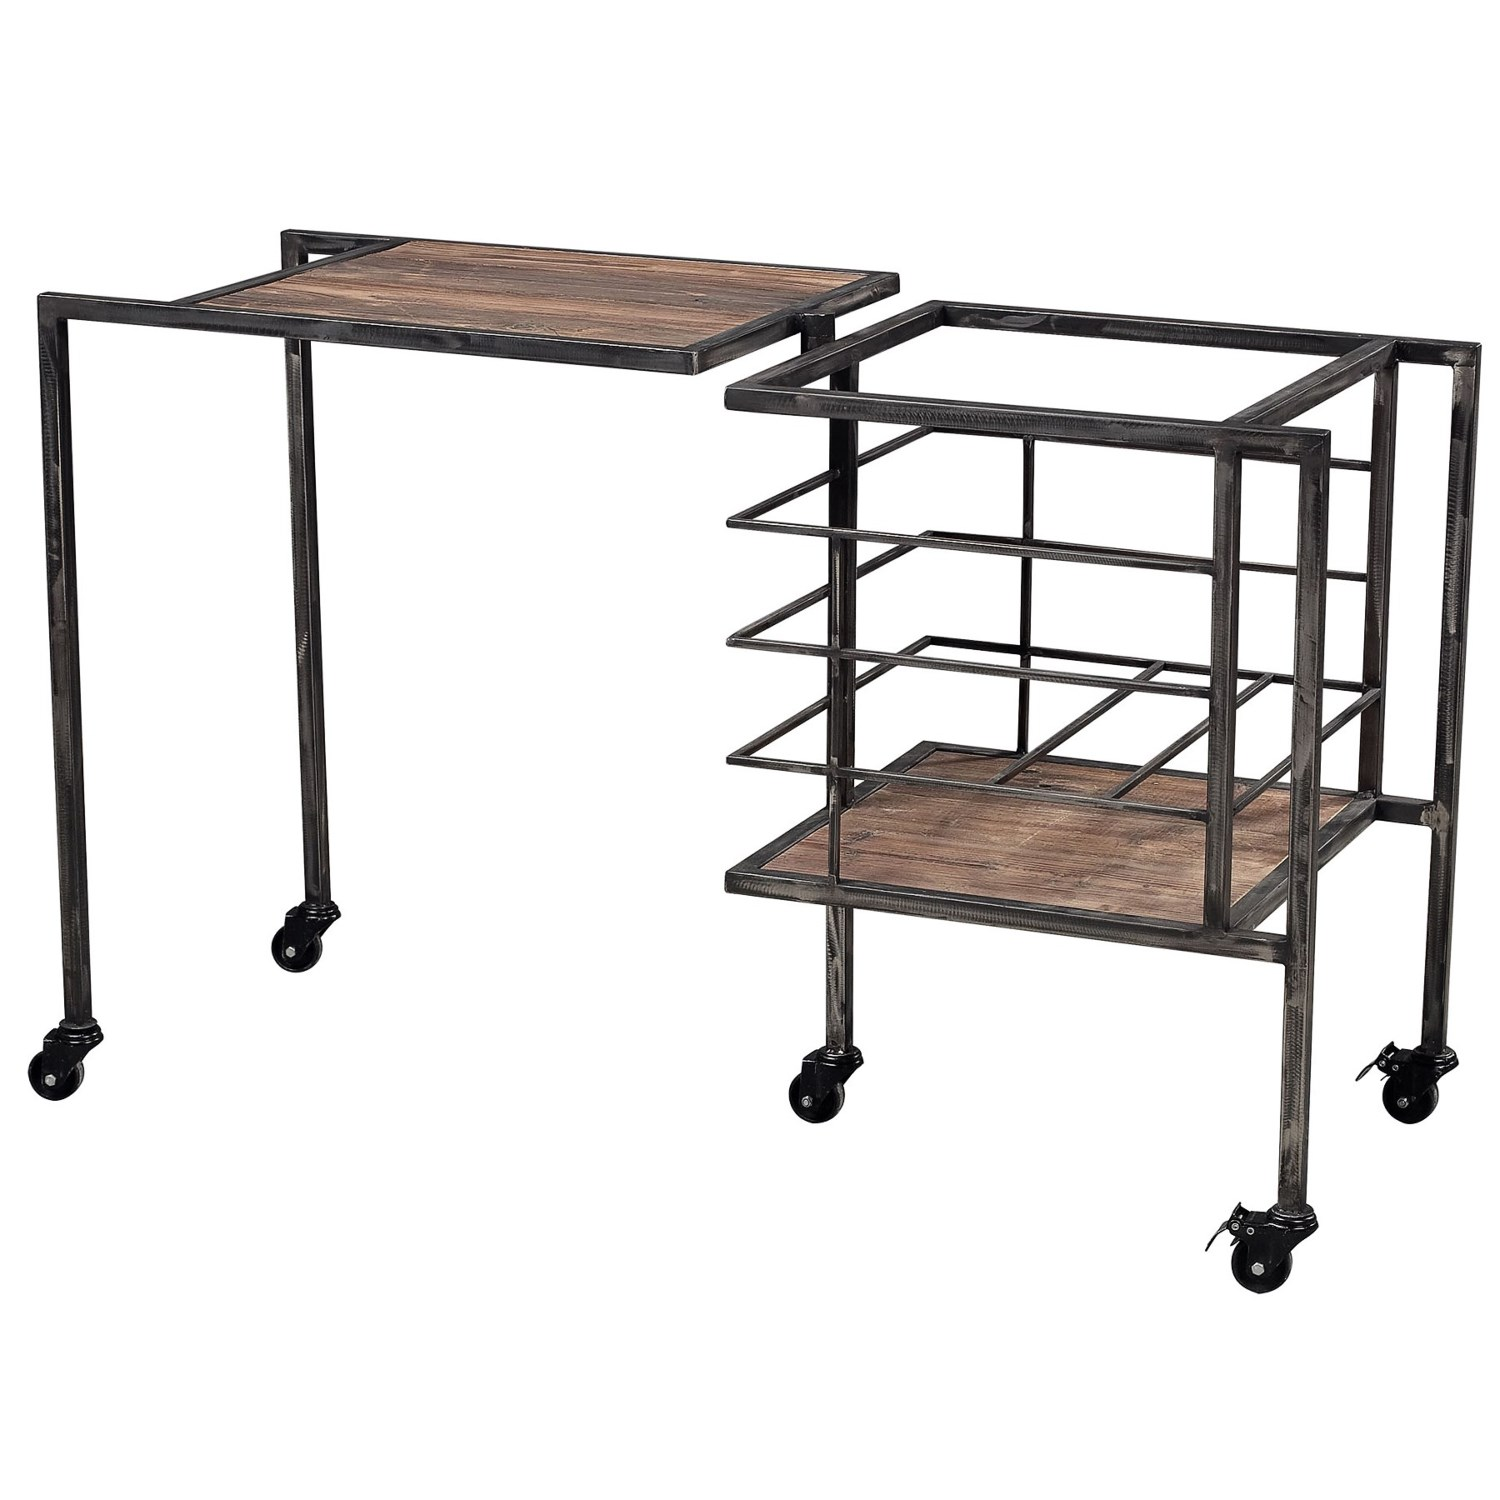 Sterling Industries Industrial Fold Away Storage Bench Save 76